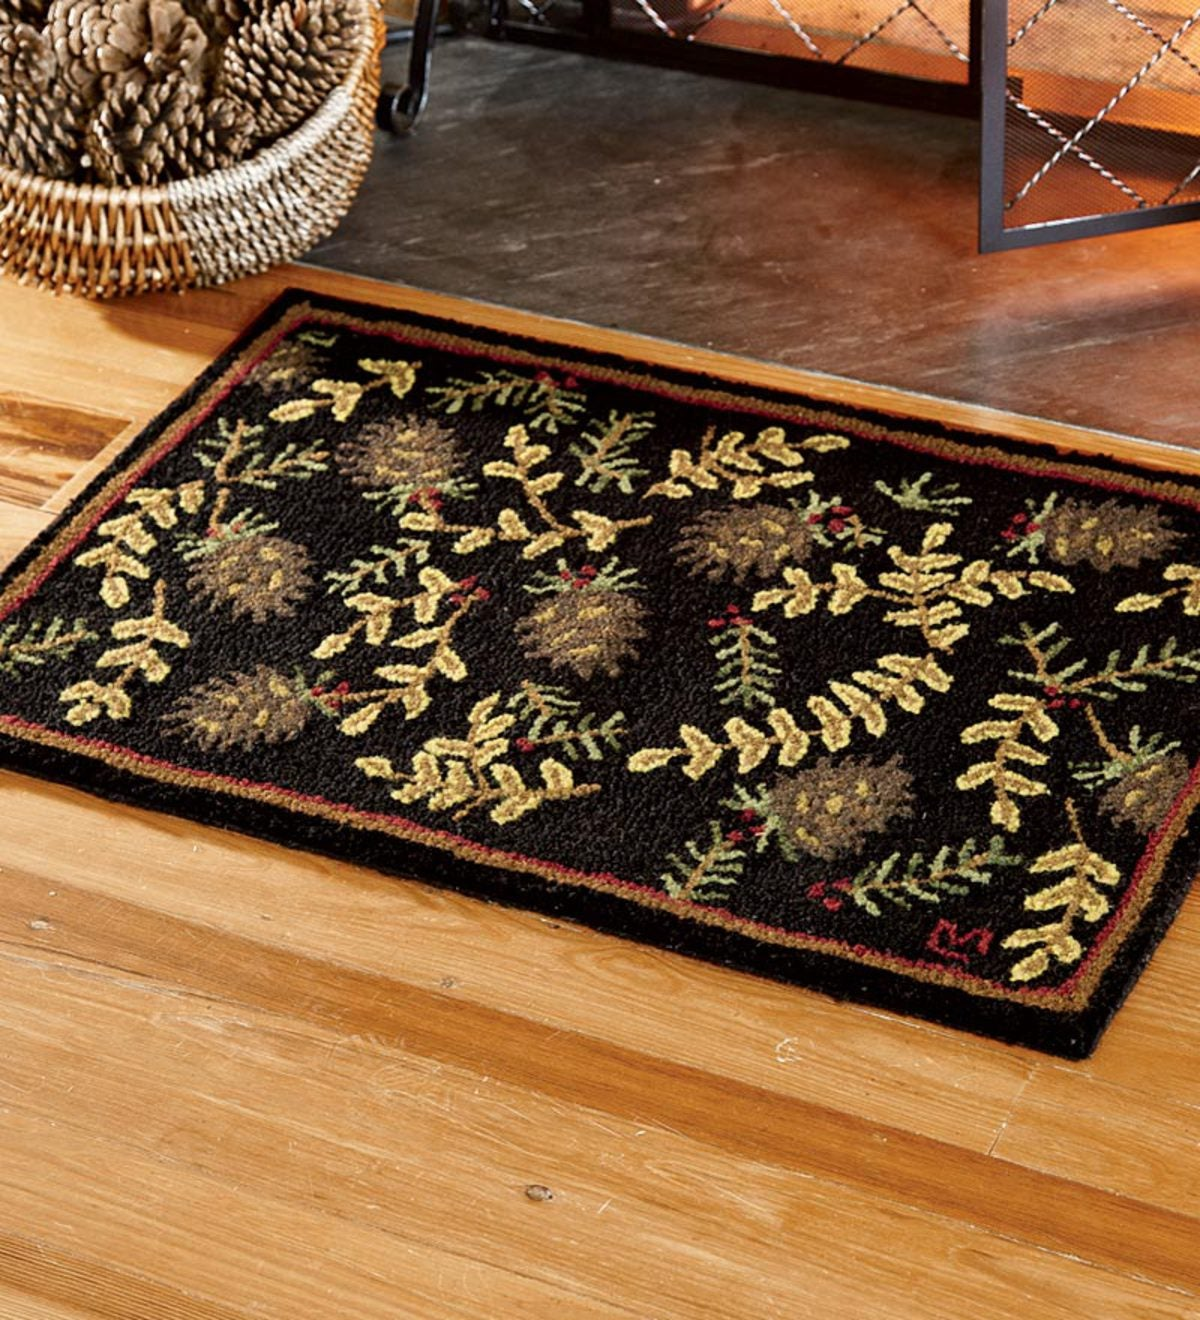 2' x 3' Hand-Hooked Fire-Resistant Willows And Cones Wool Rug